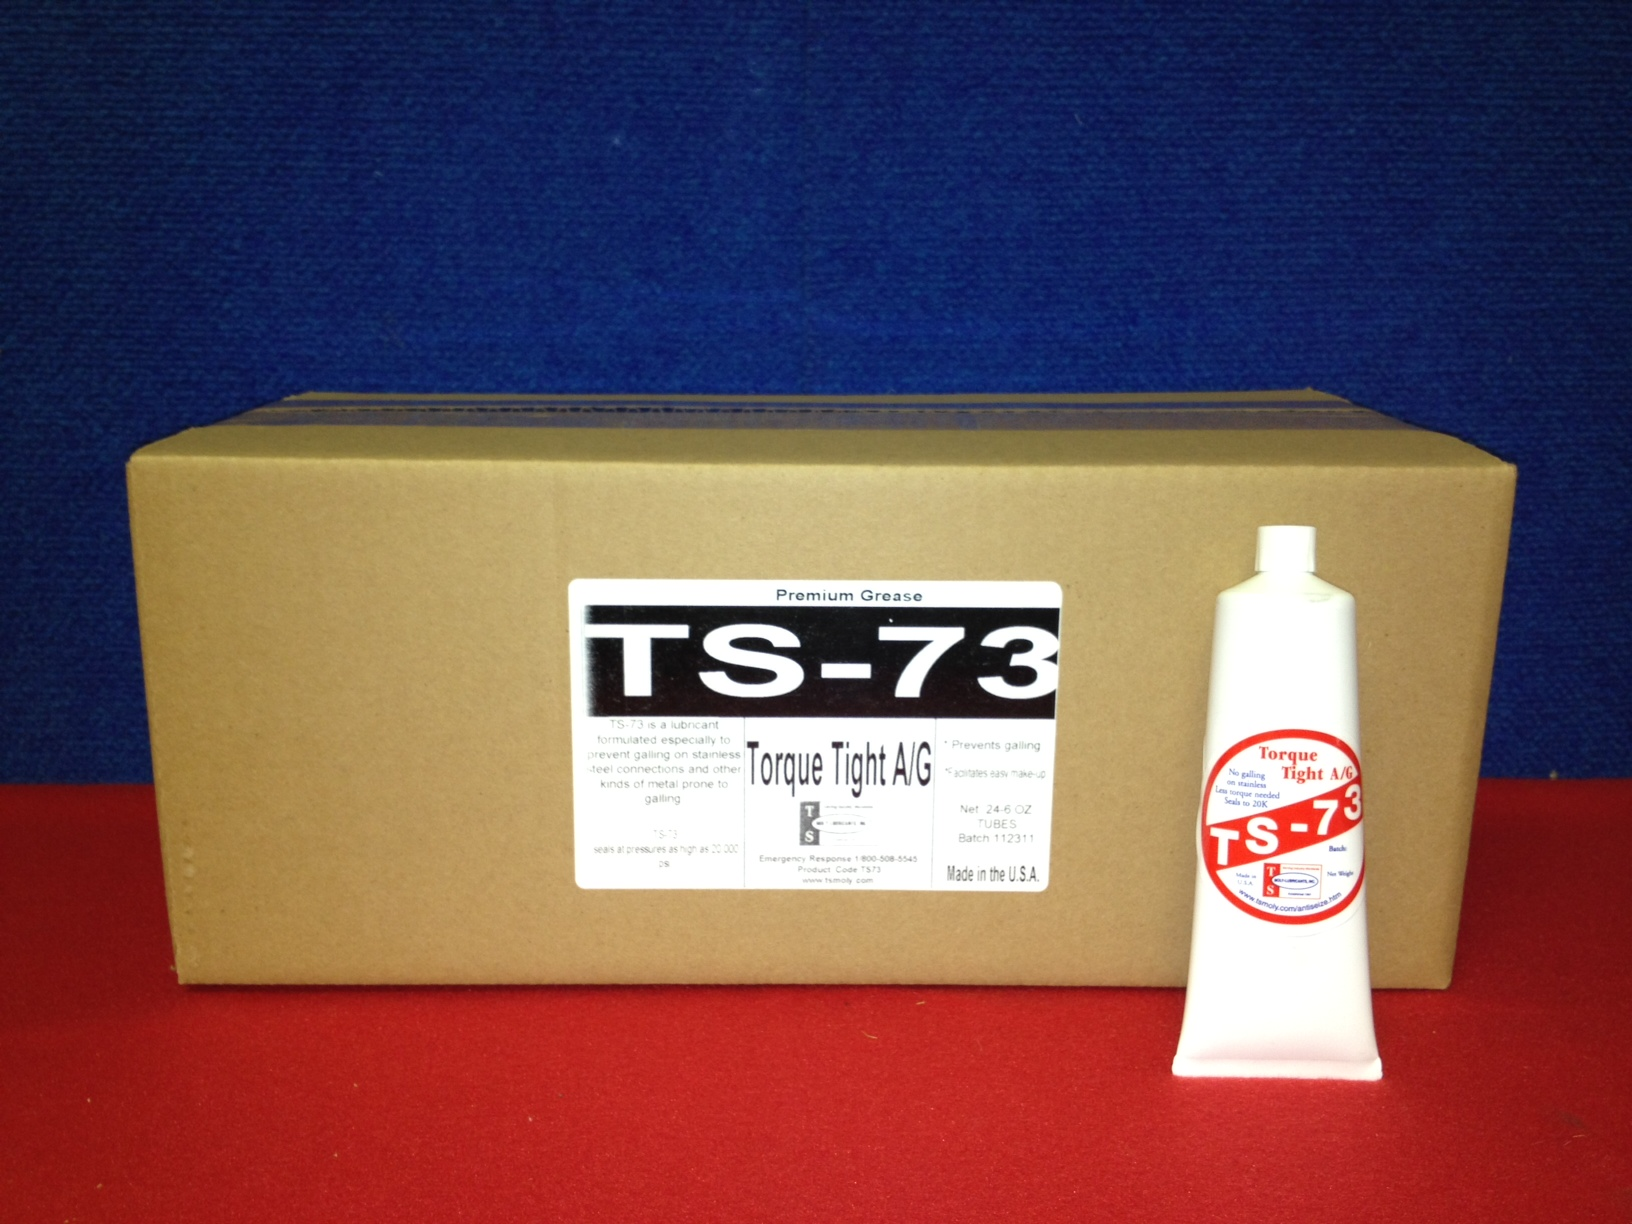 TS-73 Torque-Tight A/G